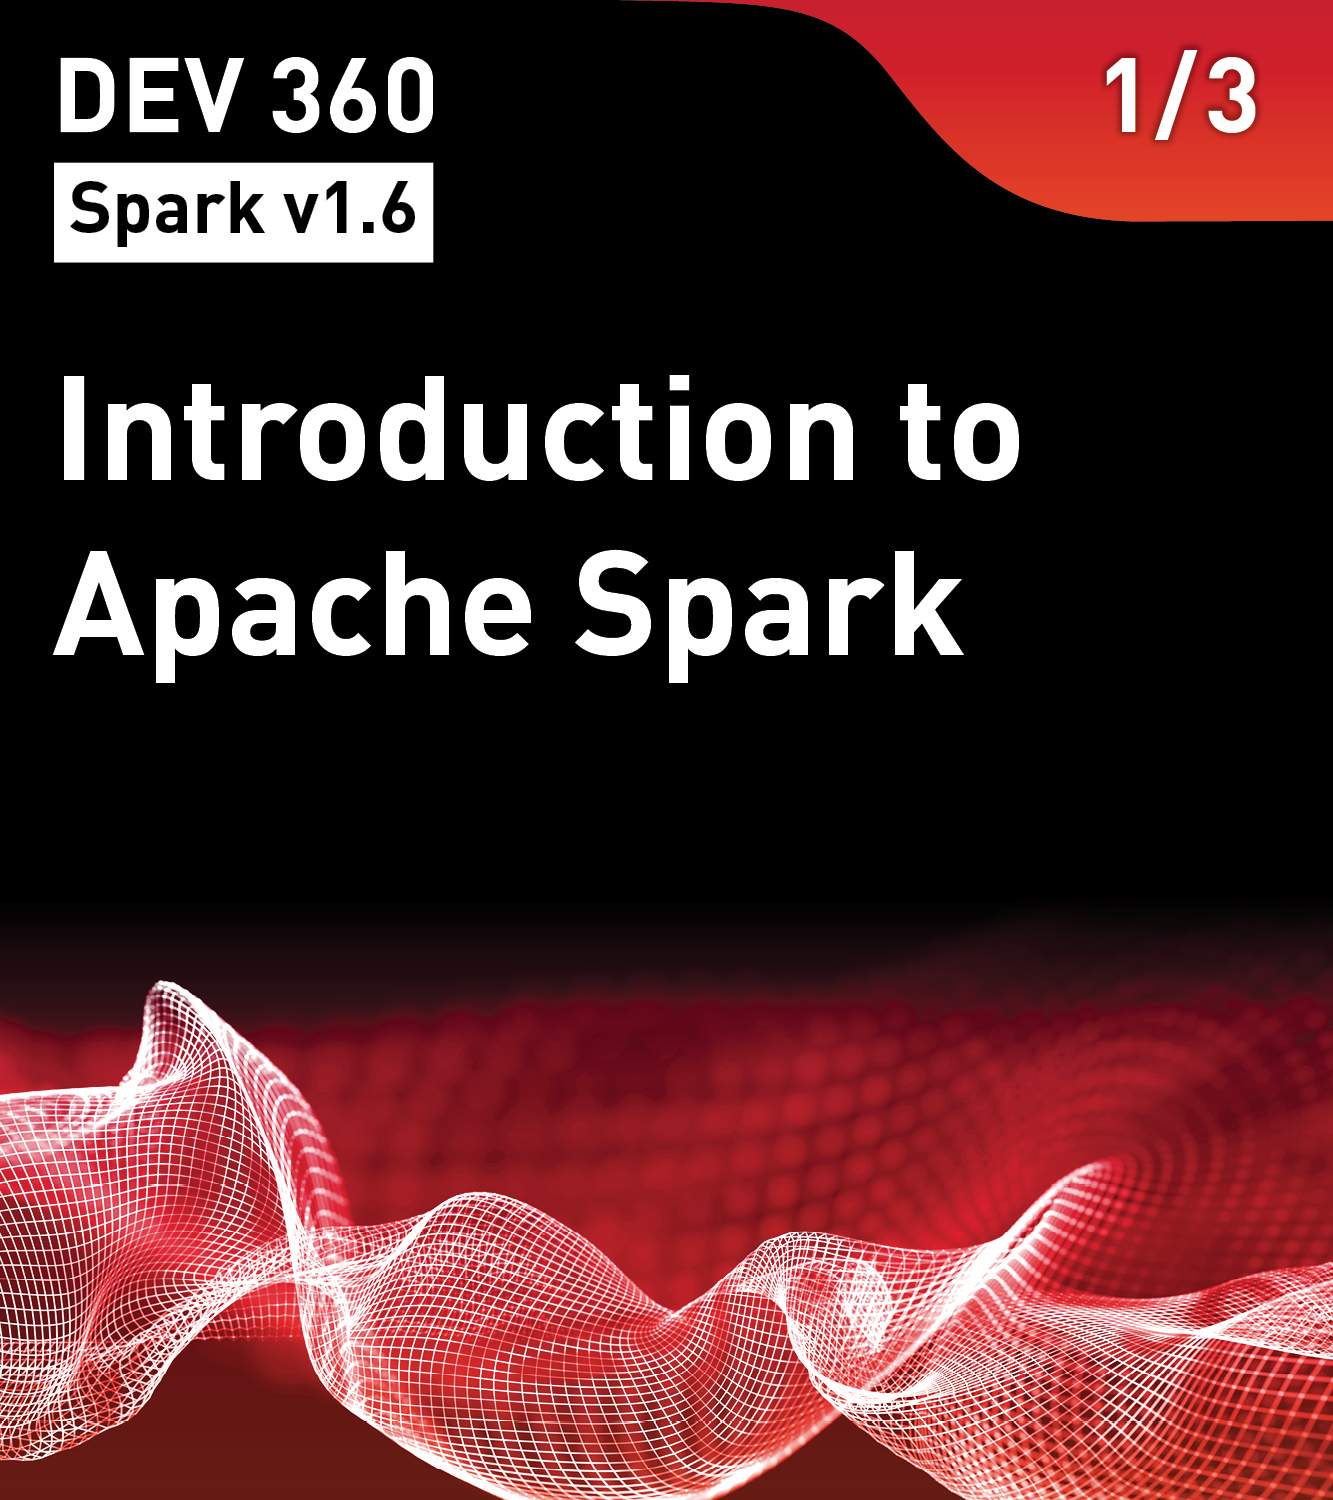 DEV 360 - Introduction to Apache Spark (Spark v1.6)